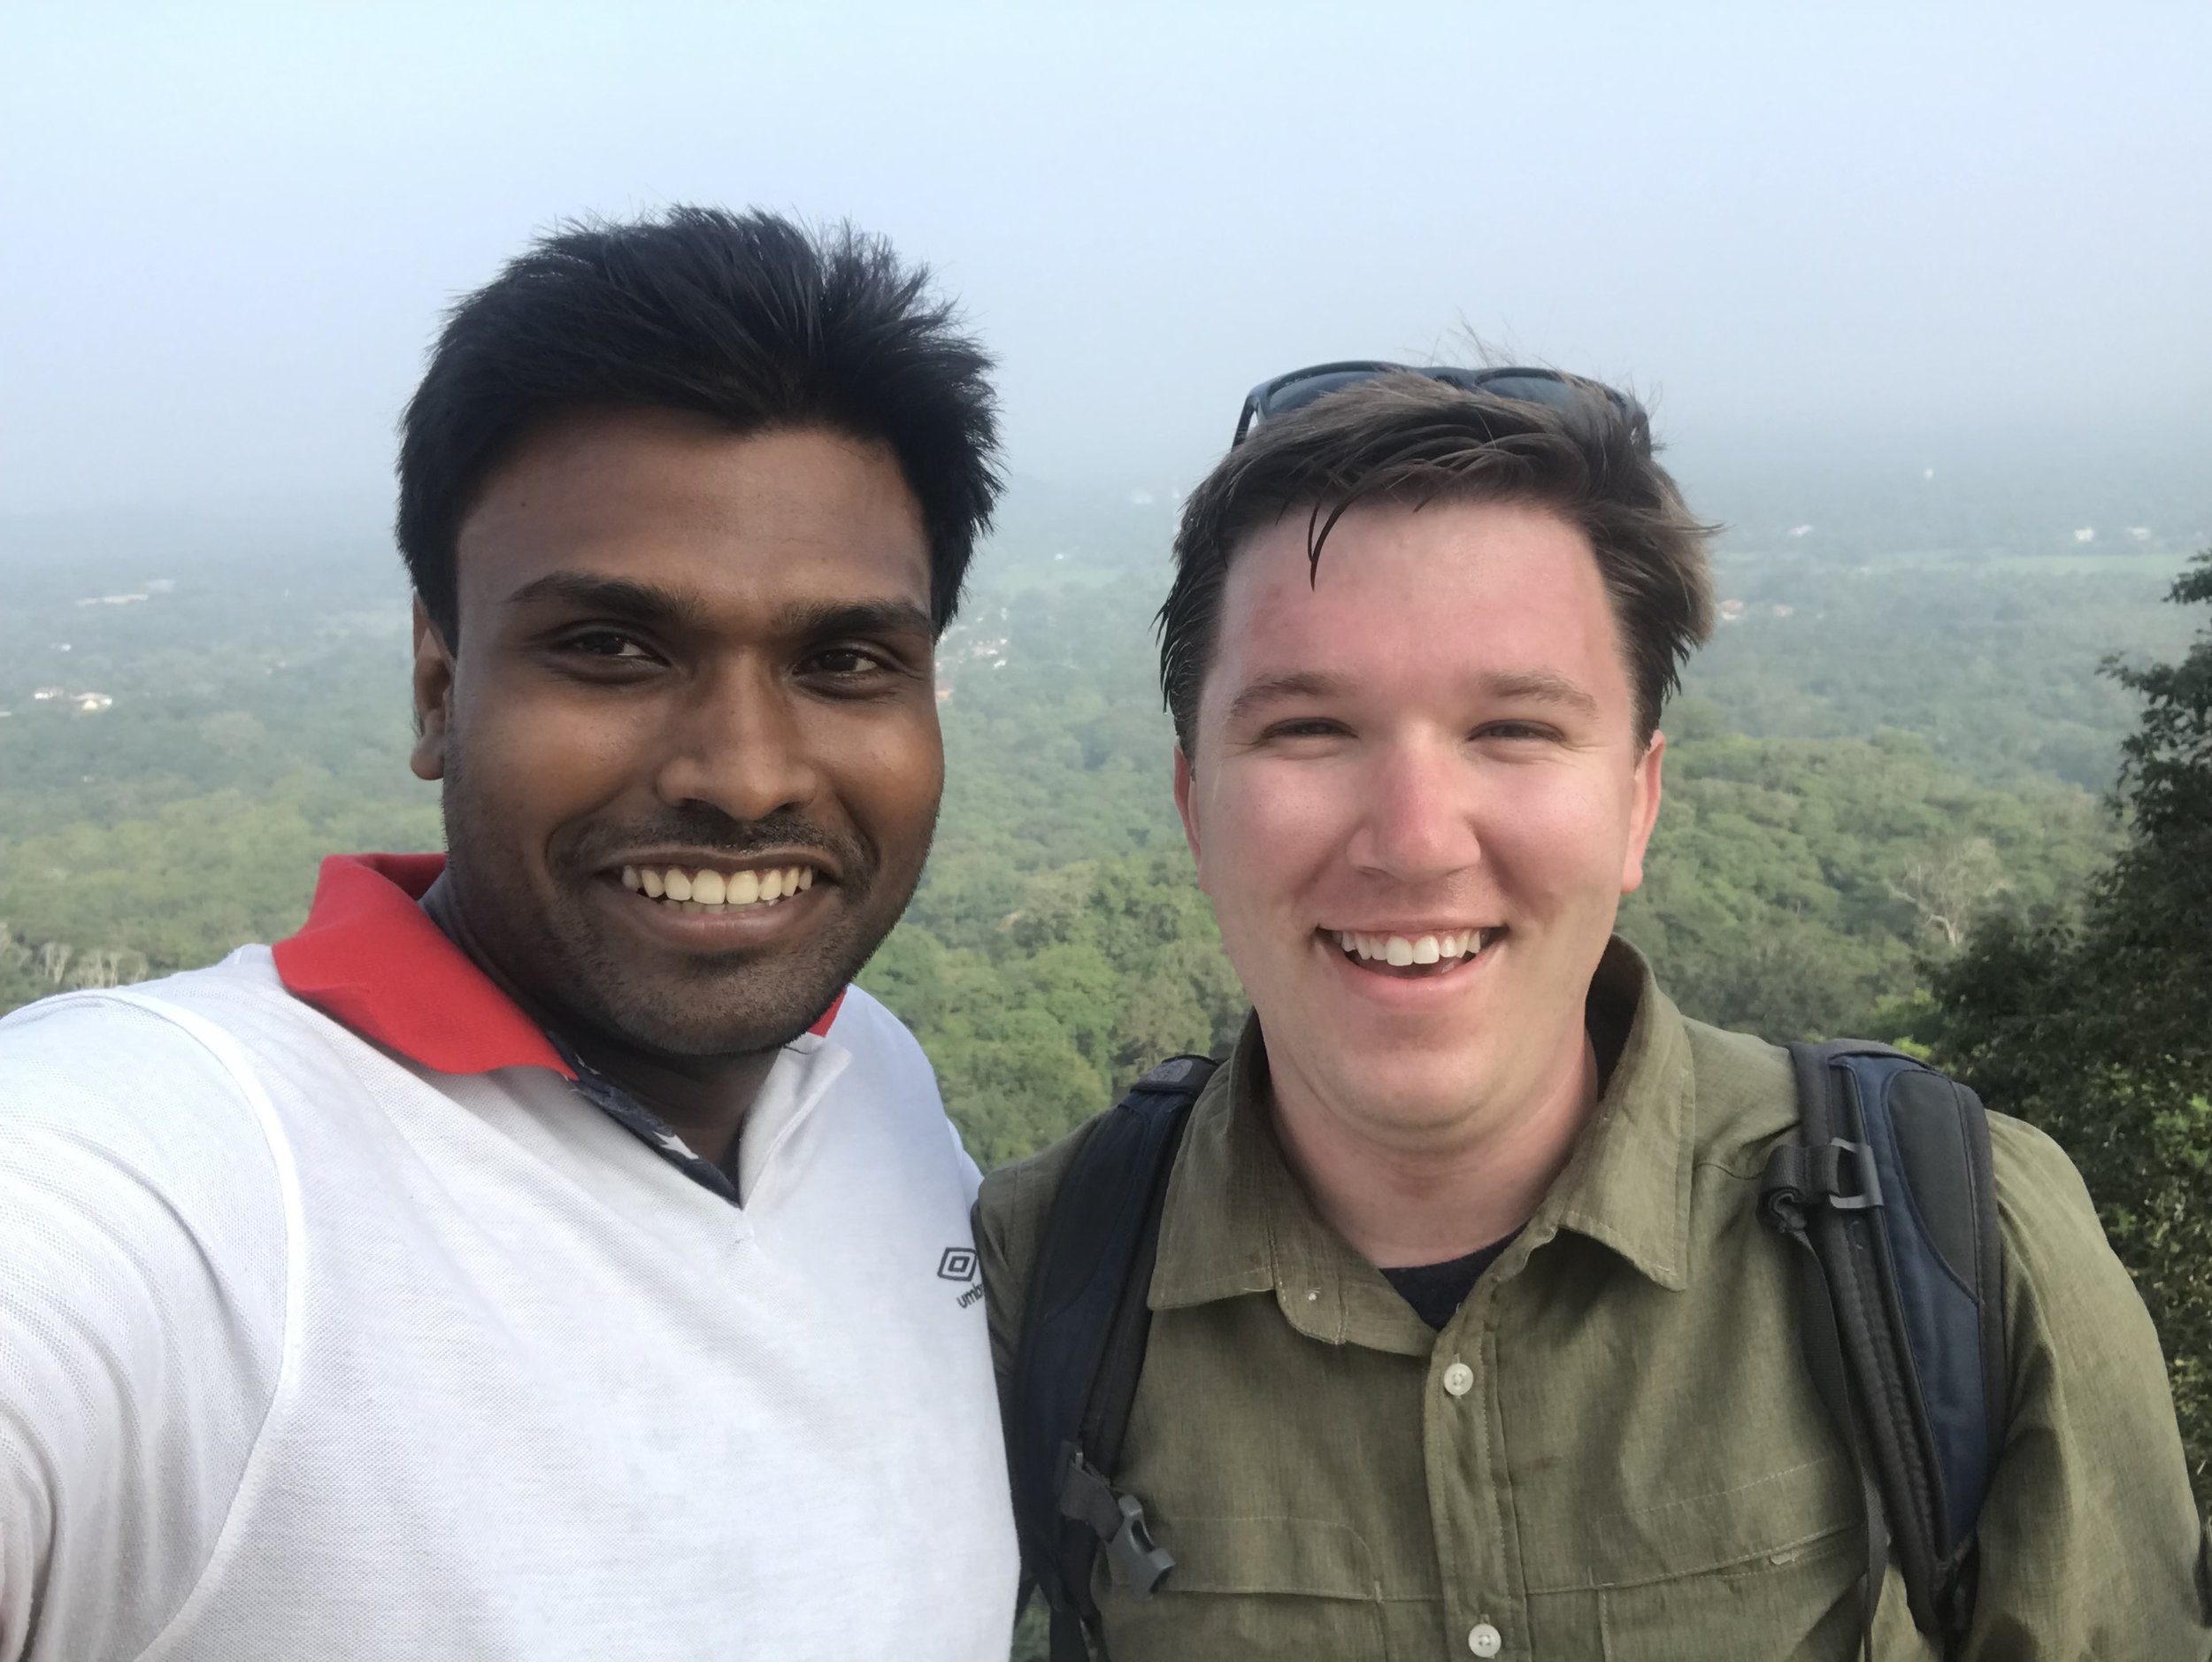 A selfie of Thilina and I atop the Maha Stupa. My sweat shows that I still haven't acclimated to Sri Lanka's heat and humidity. Maybe by the time I leave, I will.